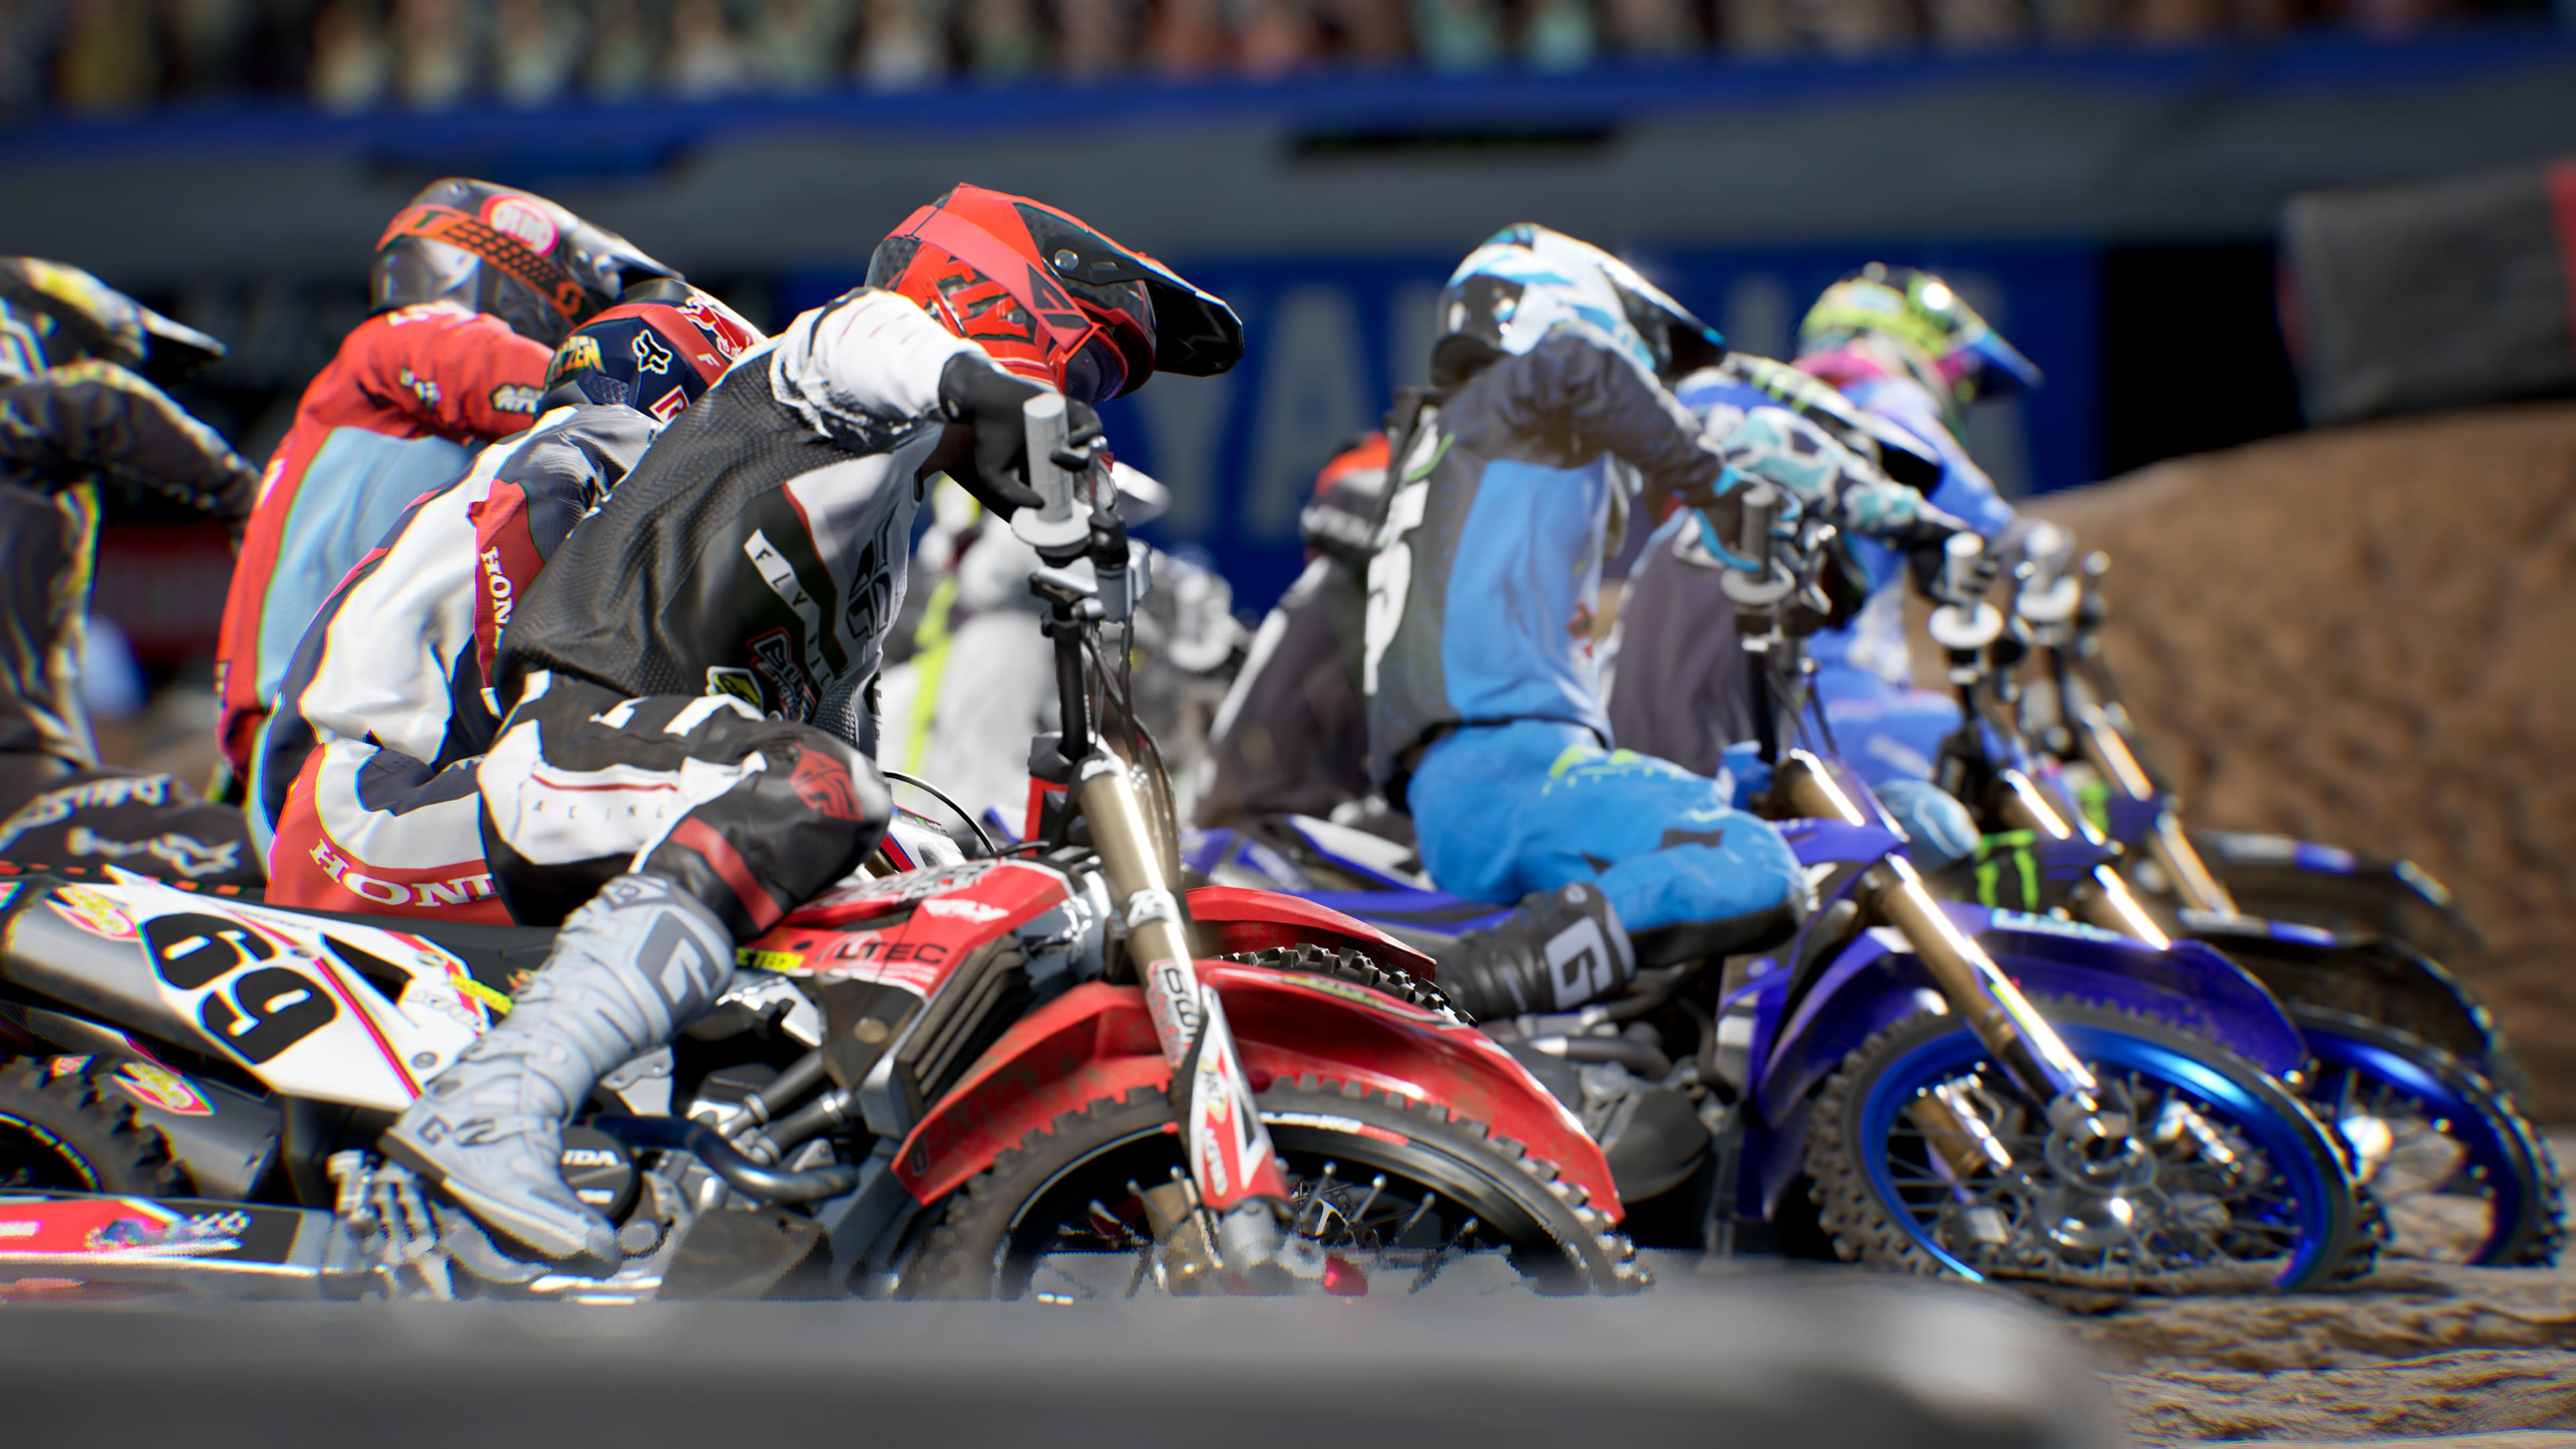 Monster Energy Supercross - The Official Videogame 4 | ROW (a295c98e-4f37-4cc6-ad3f-7f3135b44f5a)